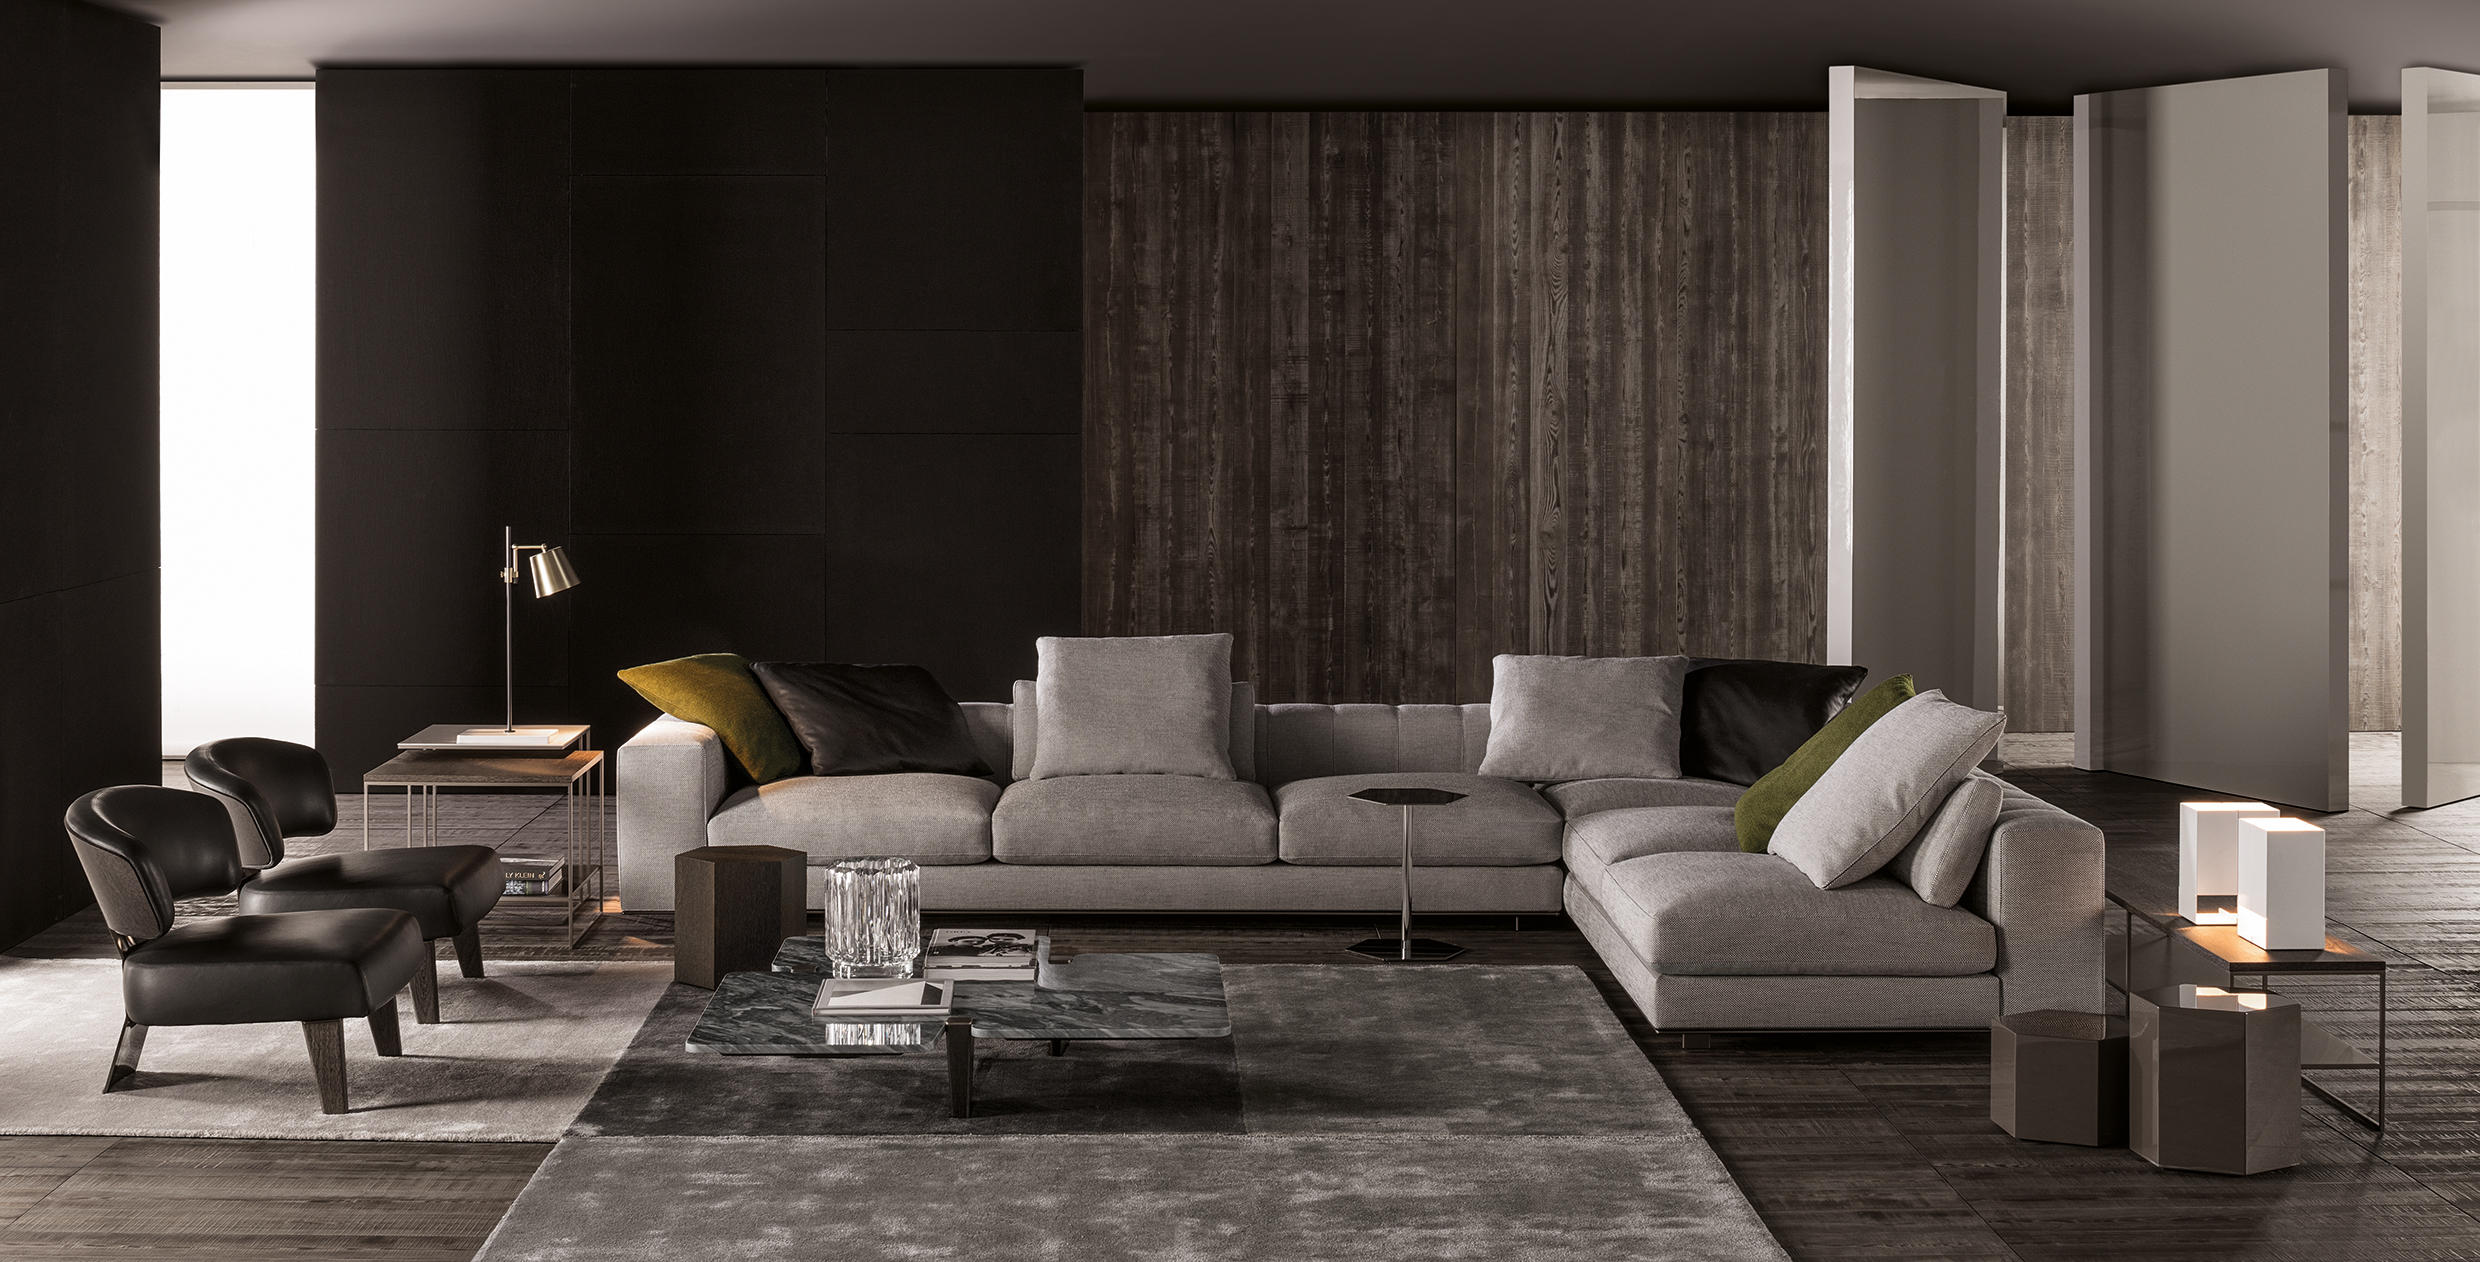 freeman duvet sofa sofas from minotti architonic. Black Bedroom Furniture Sets. Home Design Ideas